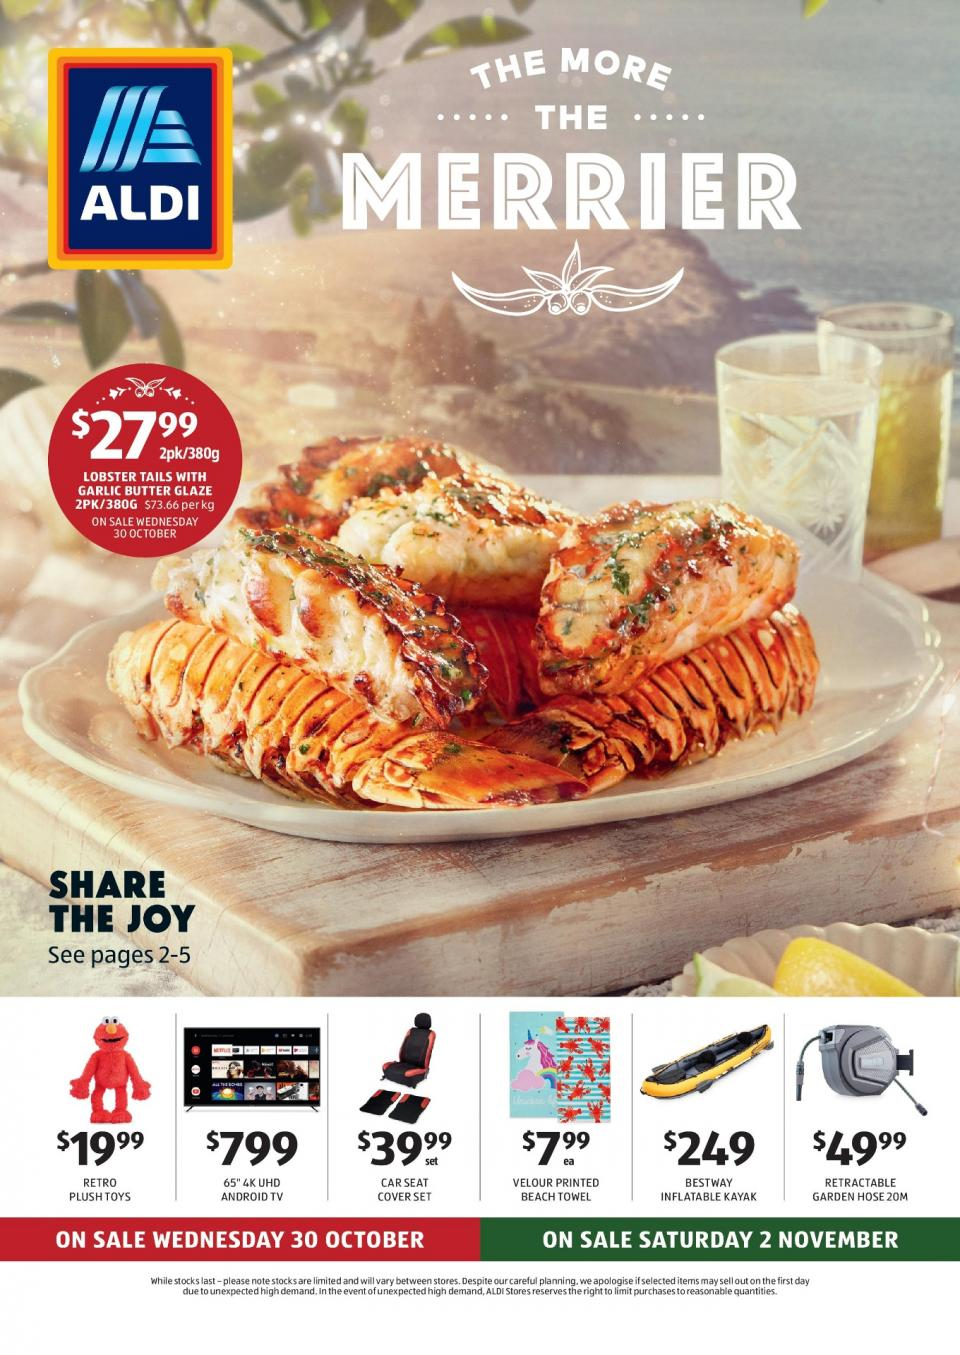 aldi catalogue special buys week 44 2019. Black Bedroom Furniture Sets. Home Design Ideas